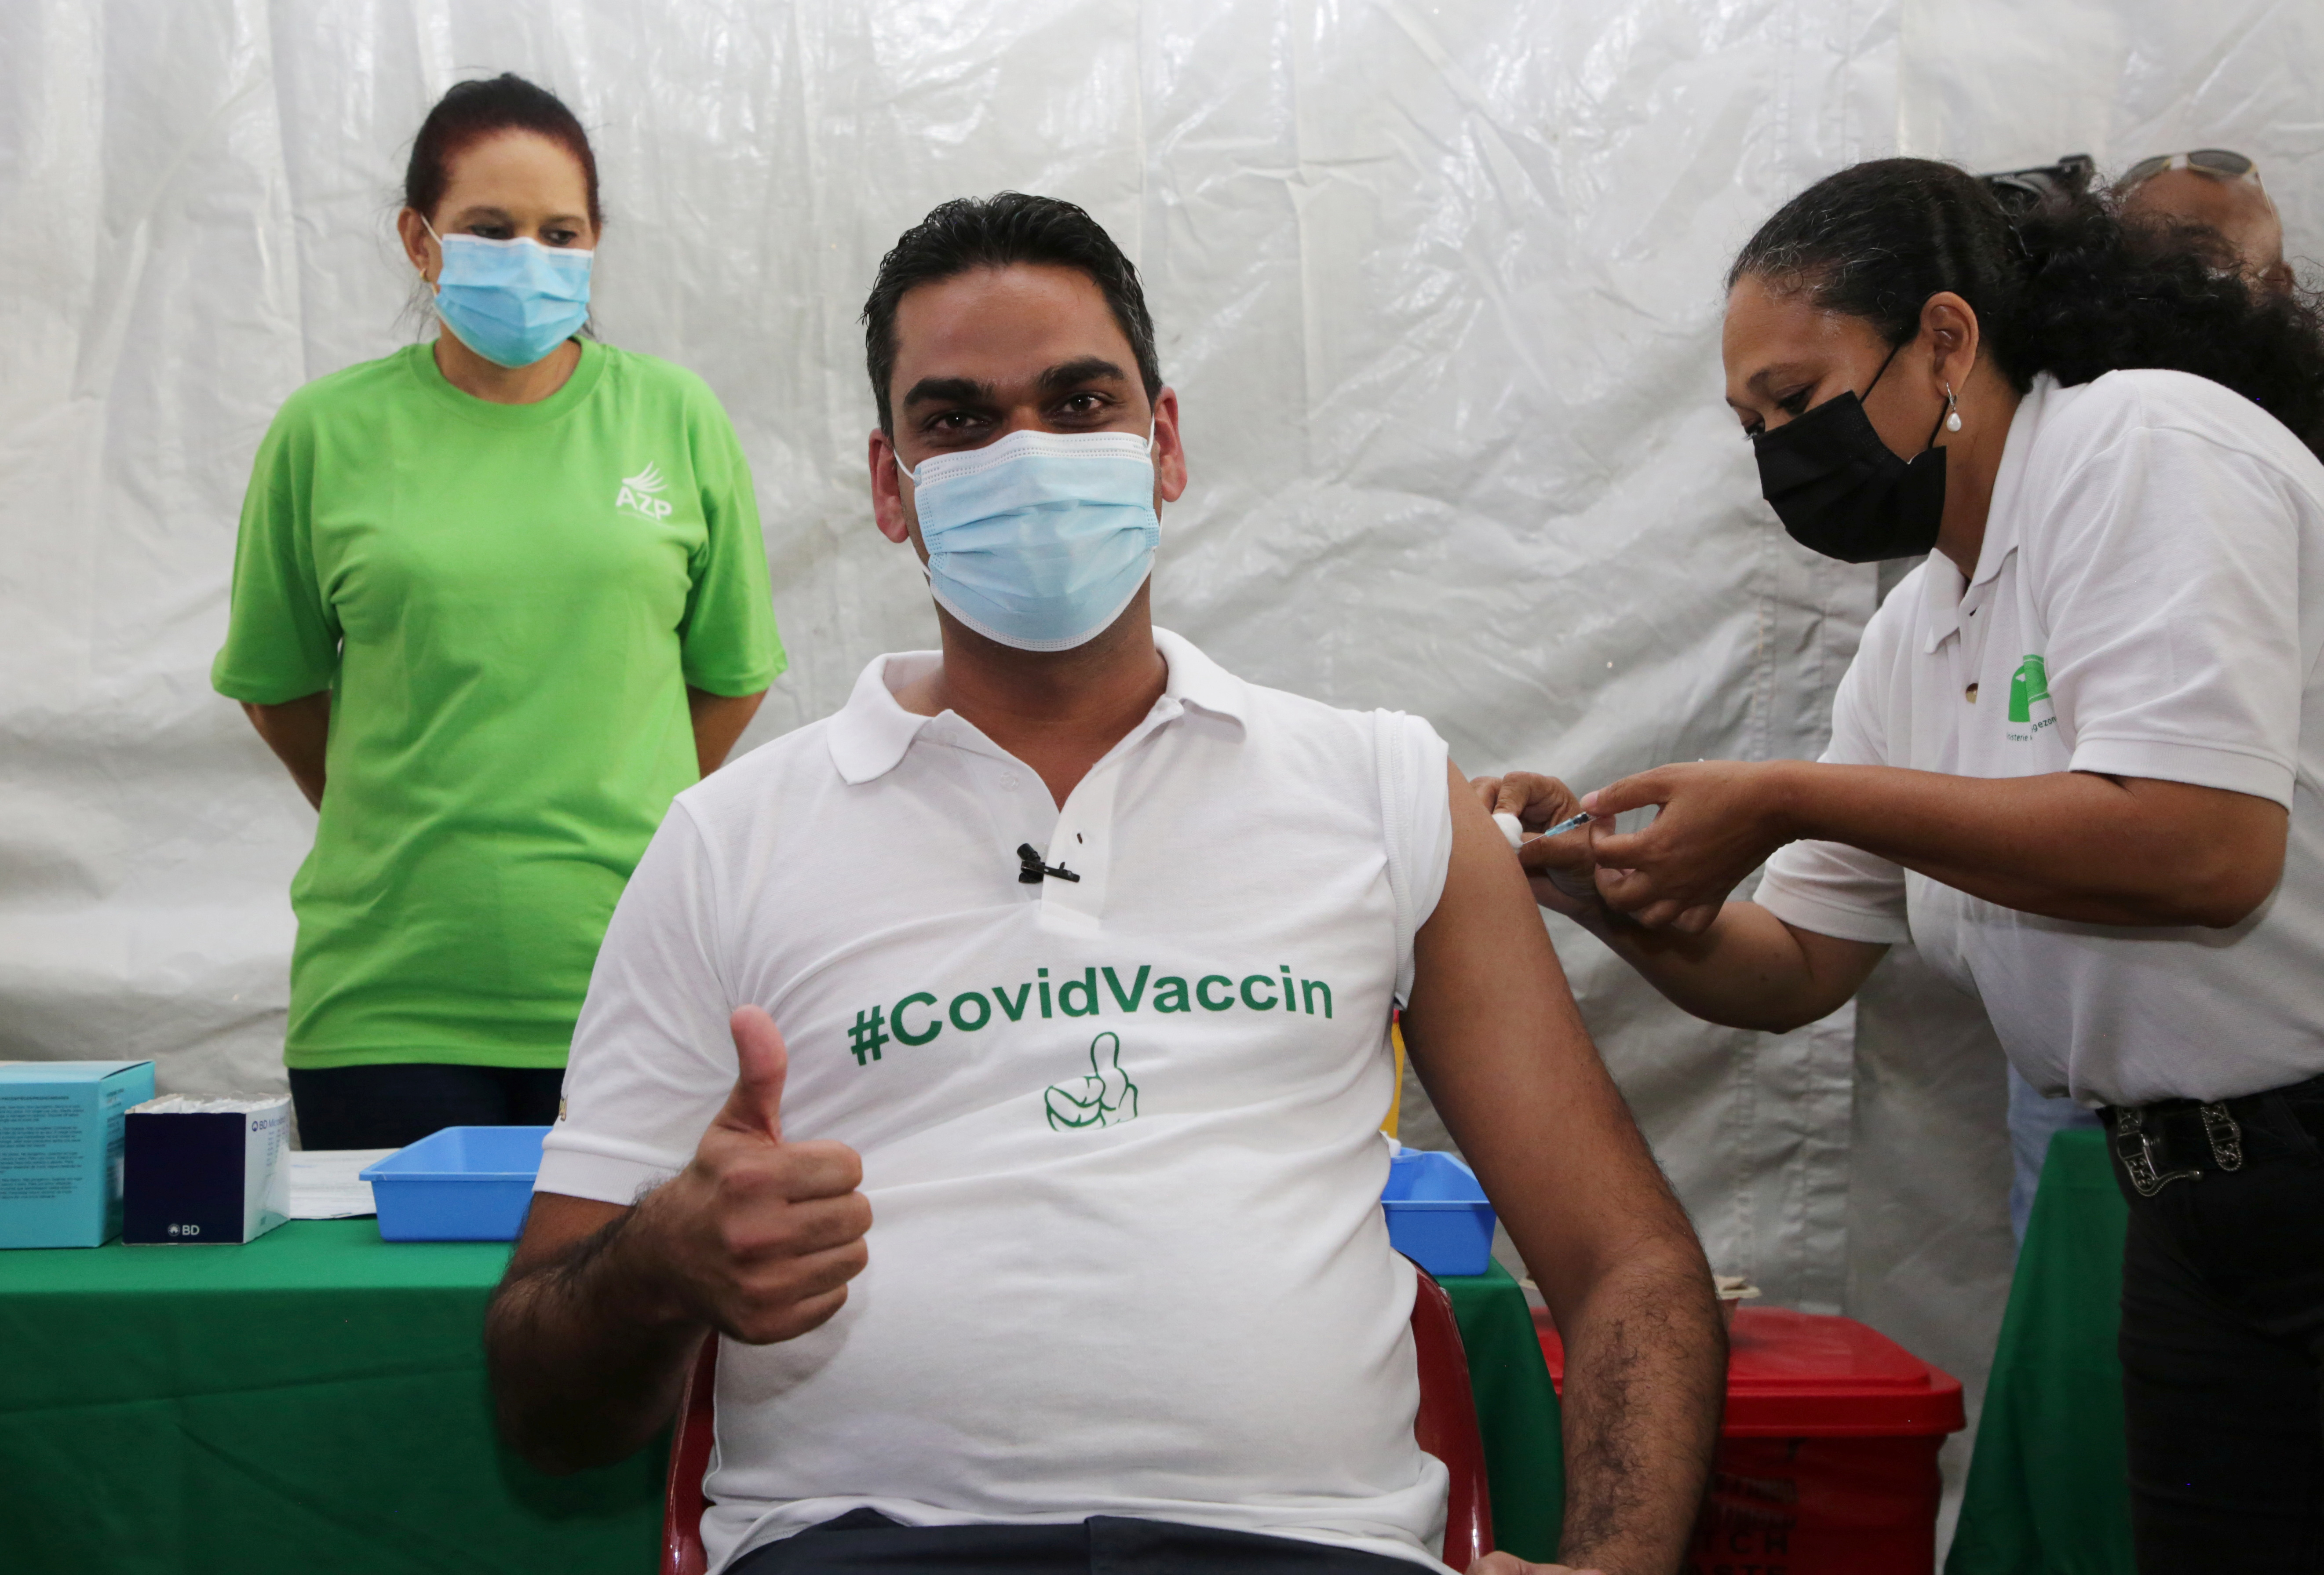 Suriname's Public Health Minister Amar Ramadhin is vaccinated with a dose of the Oxford-AstraZeneca vaccine, marketed by the Serum Institute of India (SII) as COVISHIELD, against the coronavirus disease (COVID-19), in Paramaribo, Suriname February 23, 2021. REUTERS/Ranu Abhelakh